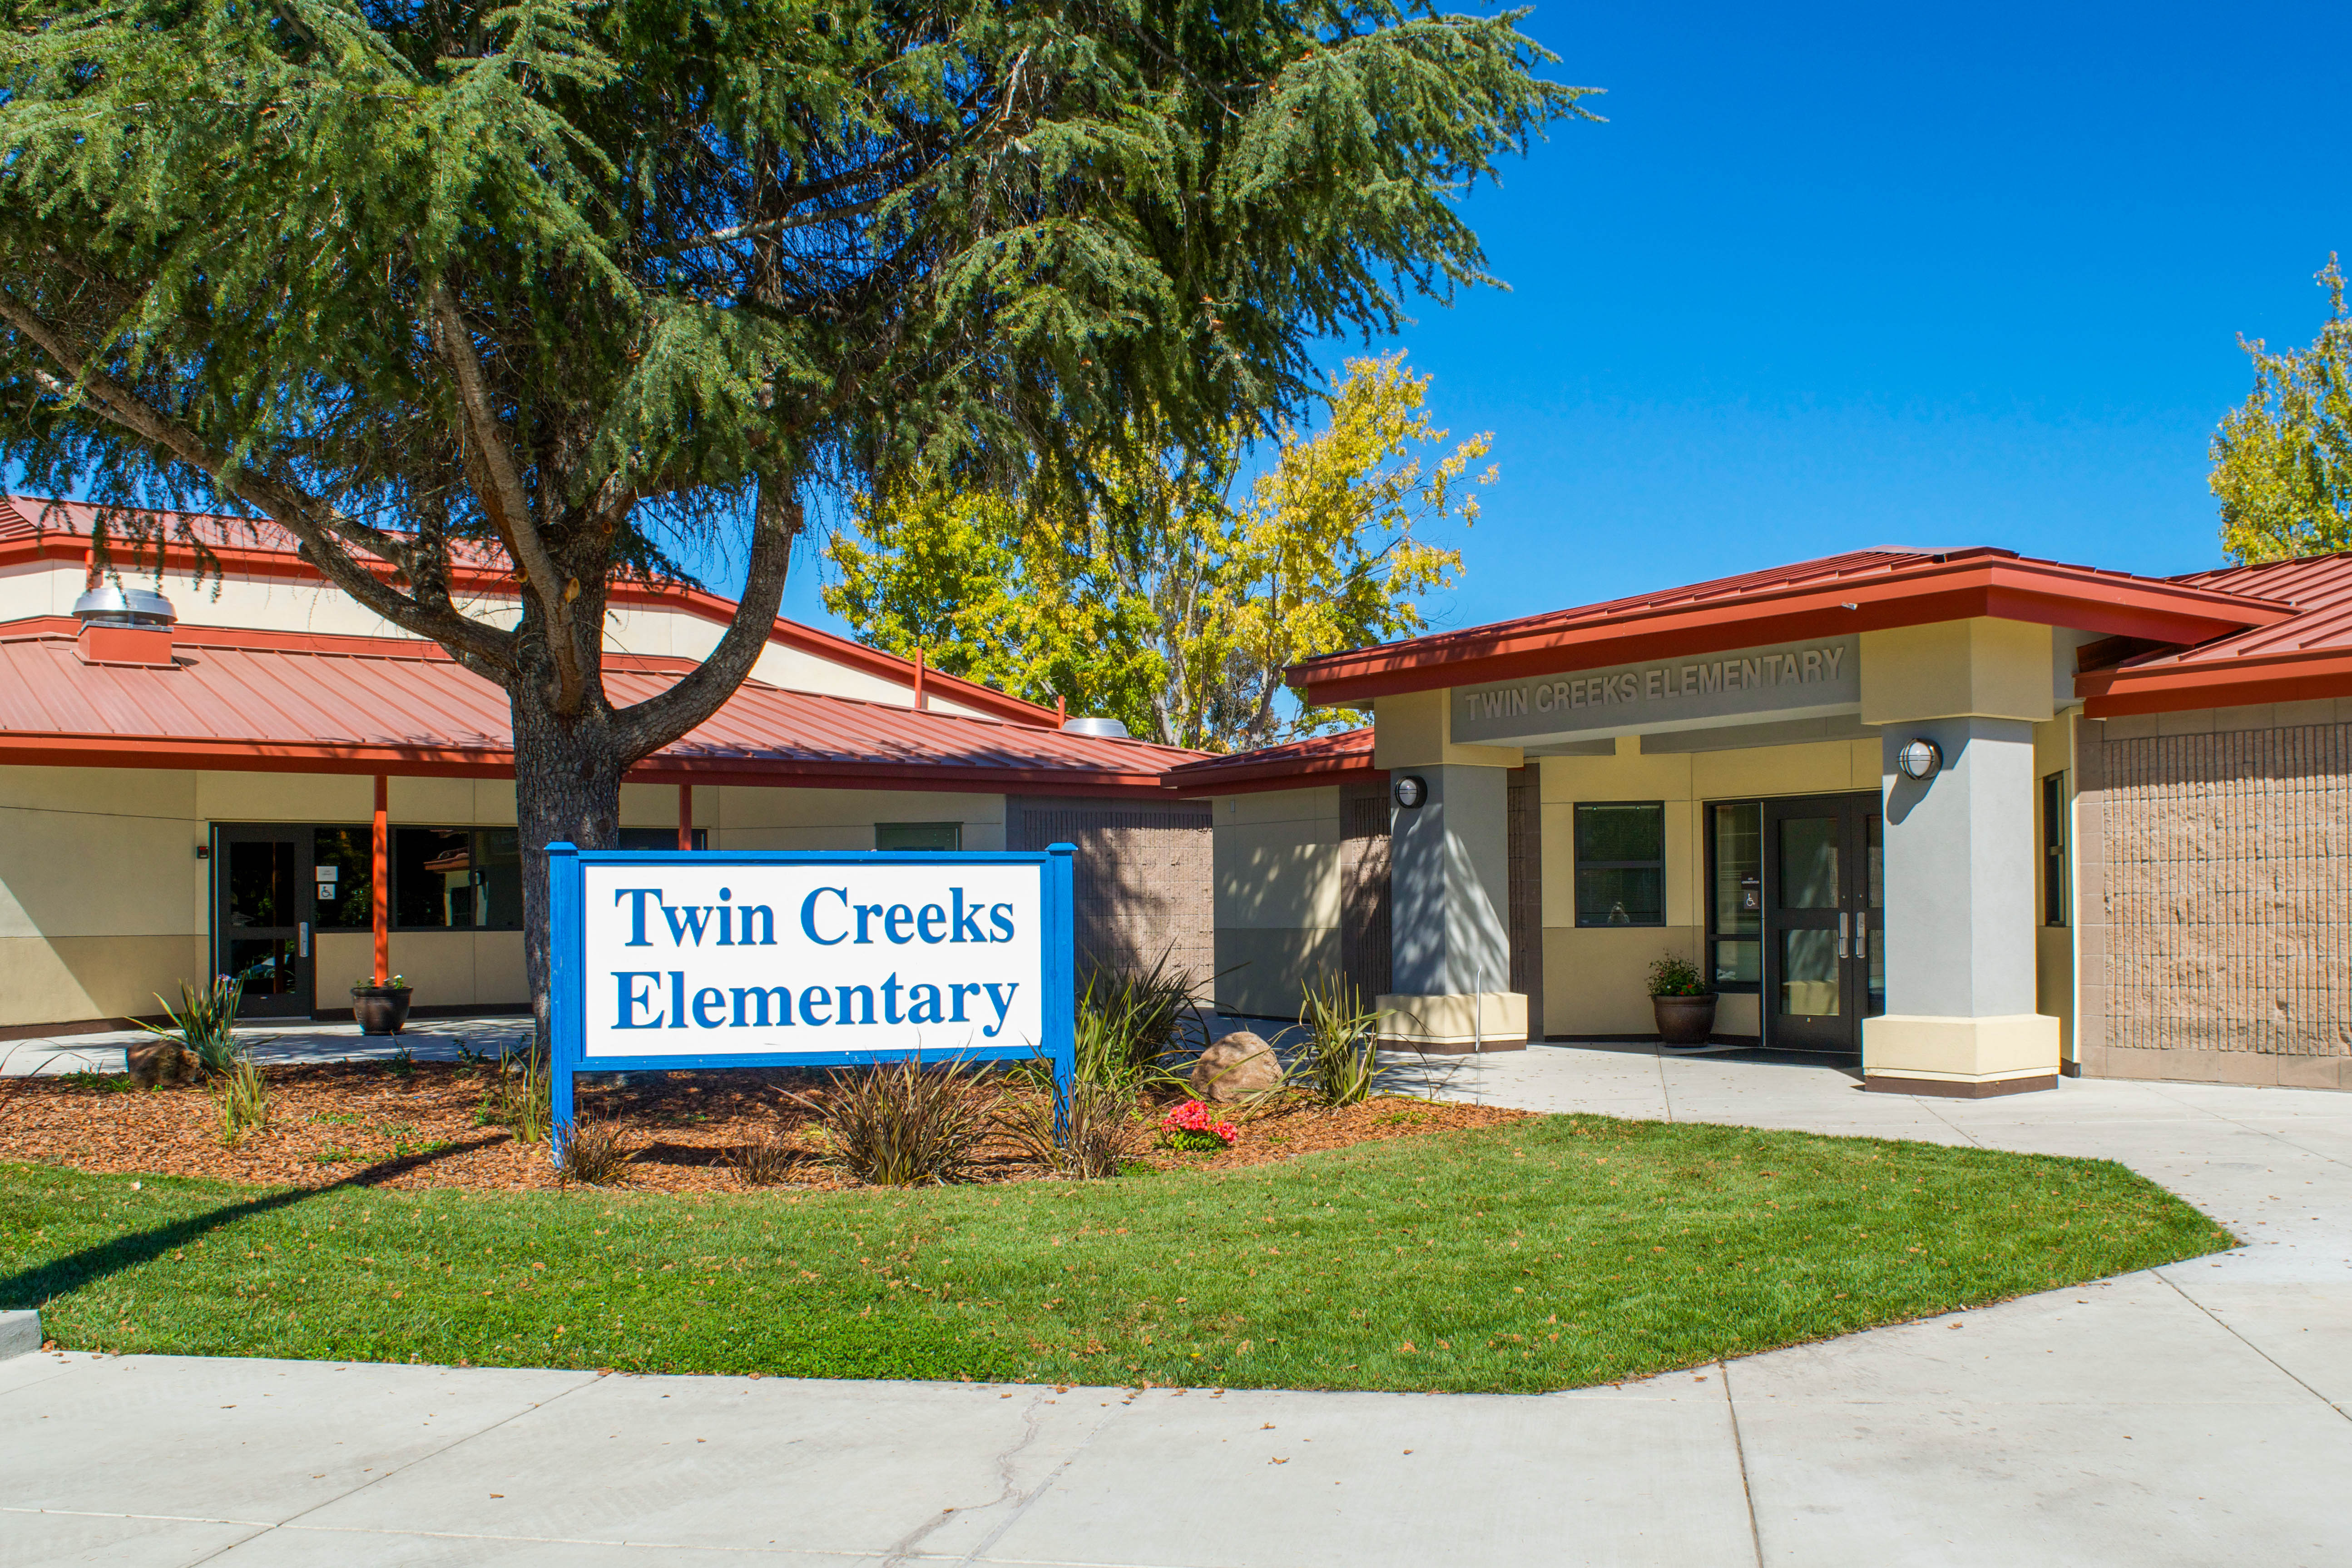 Twin Creeks Elementary School main entrance